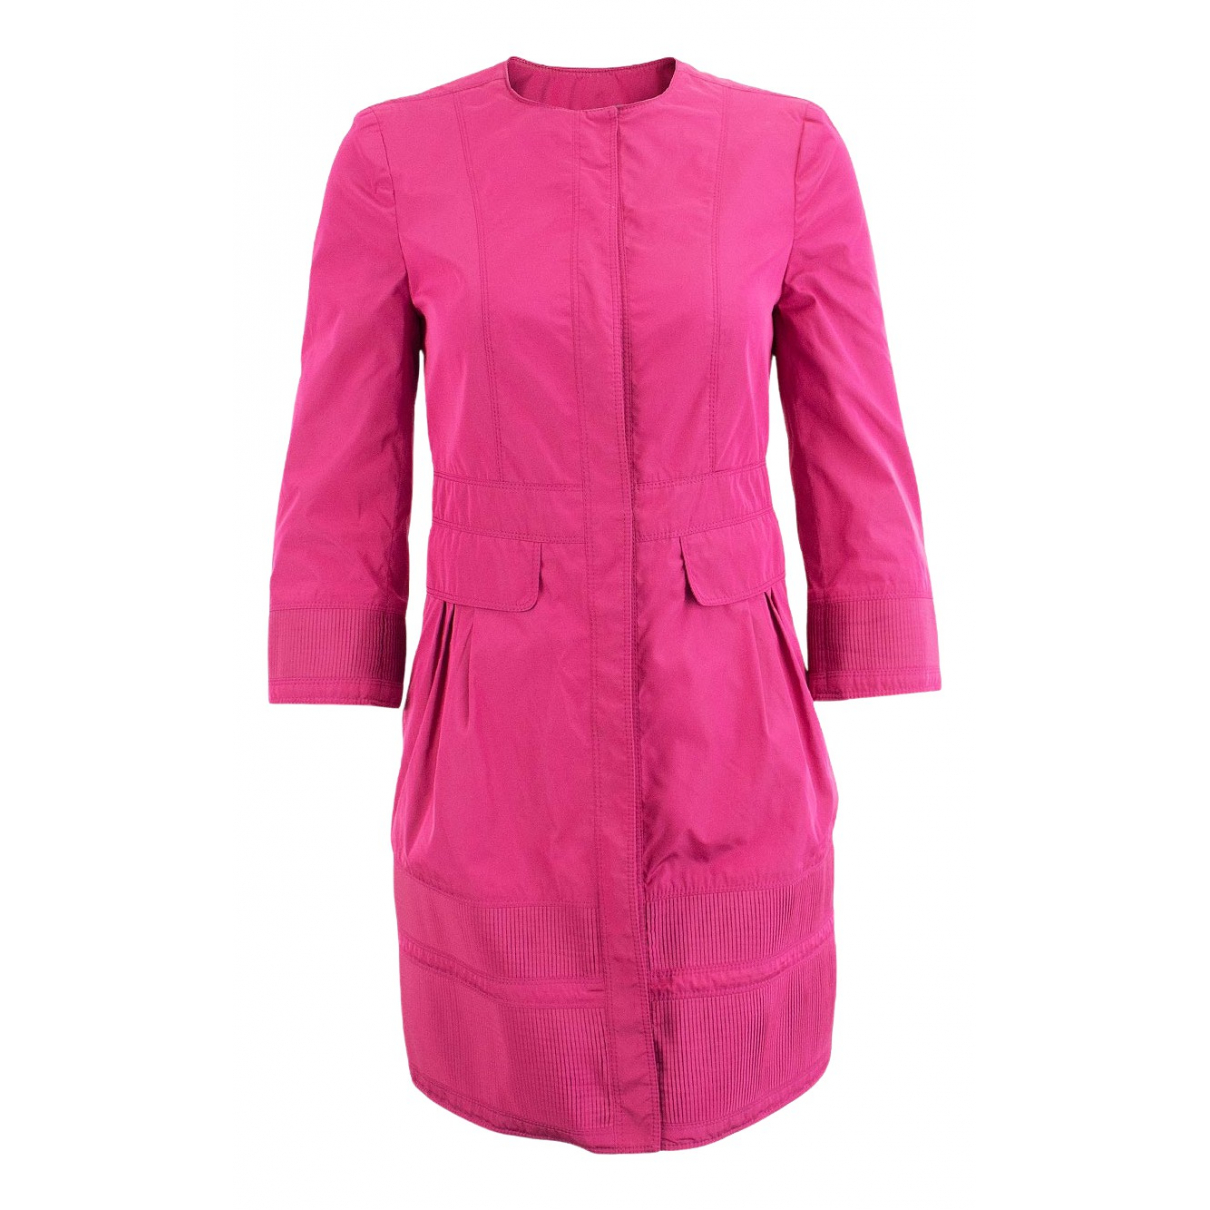 Burberry N Pink jacket for Women 4 US